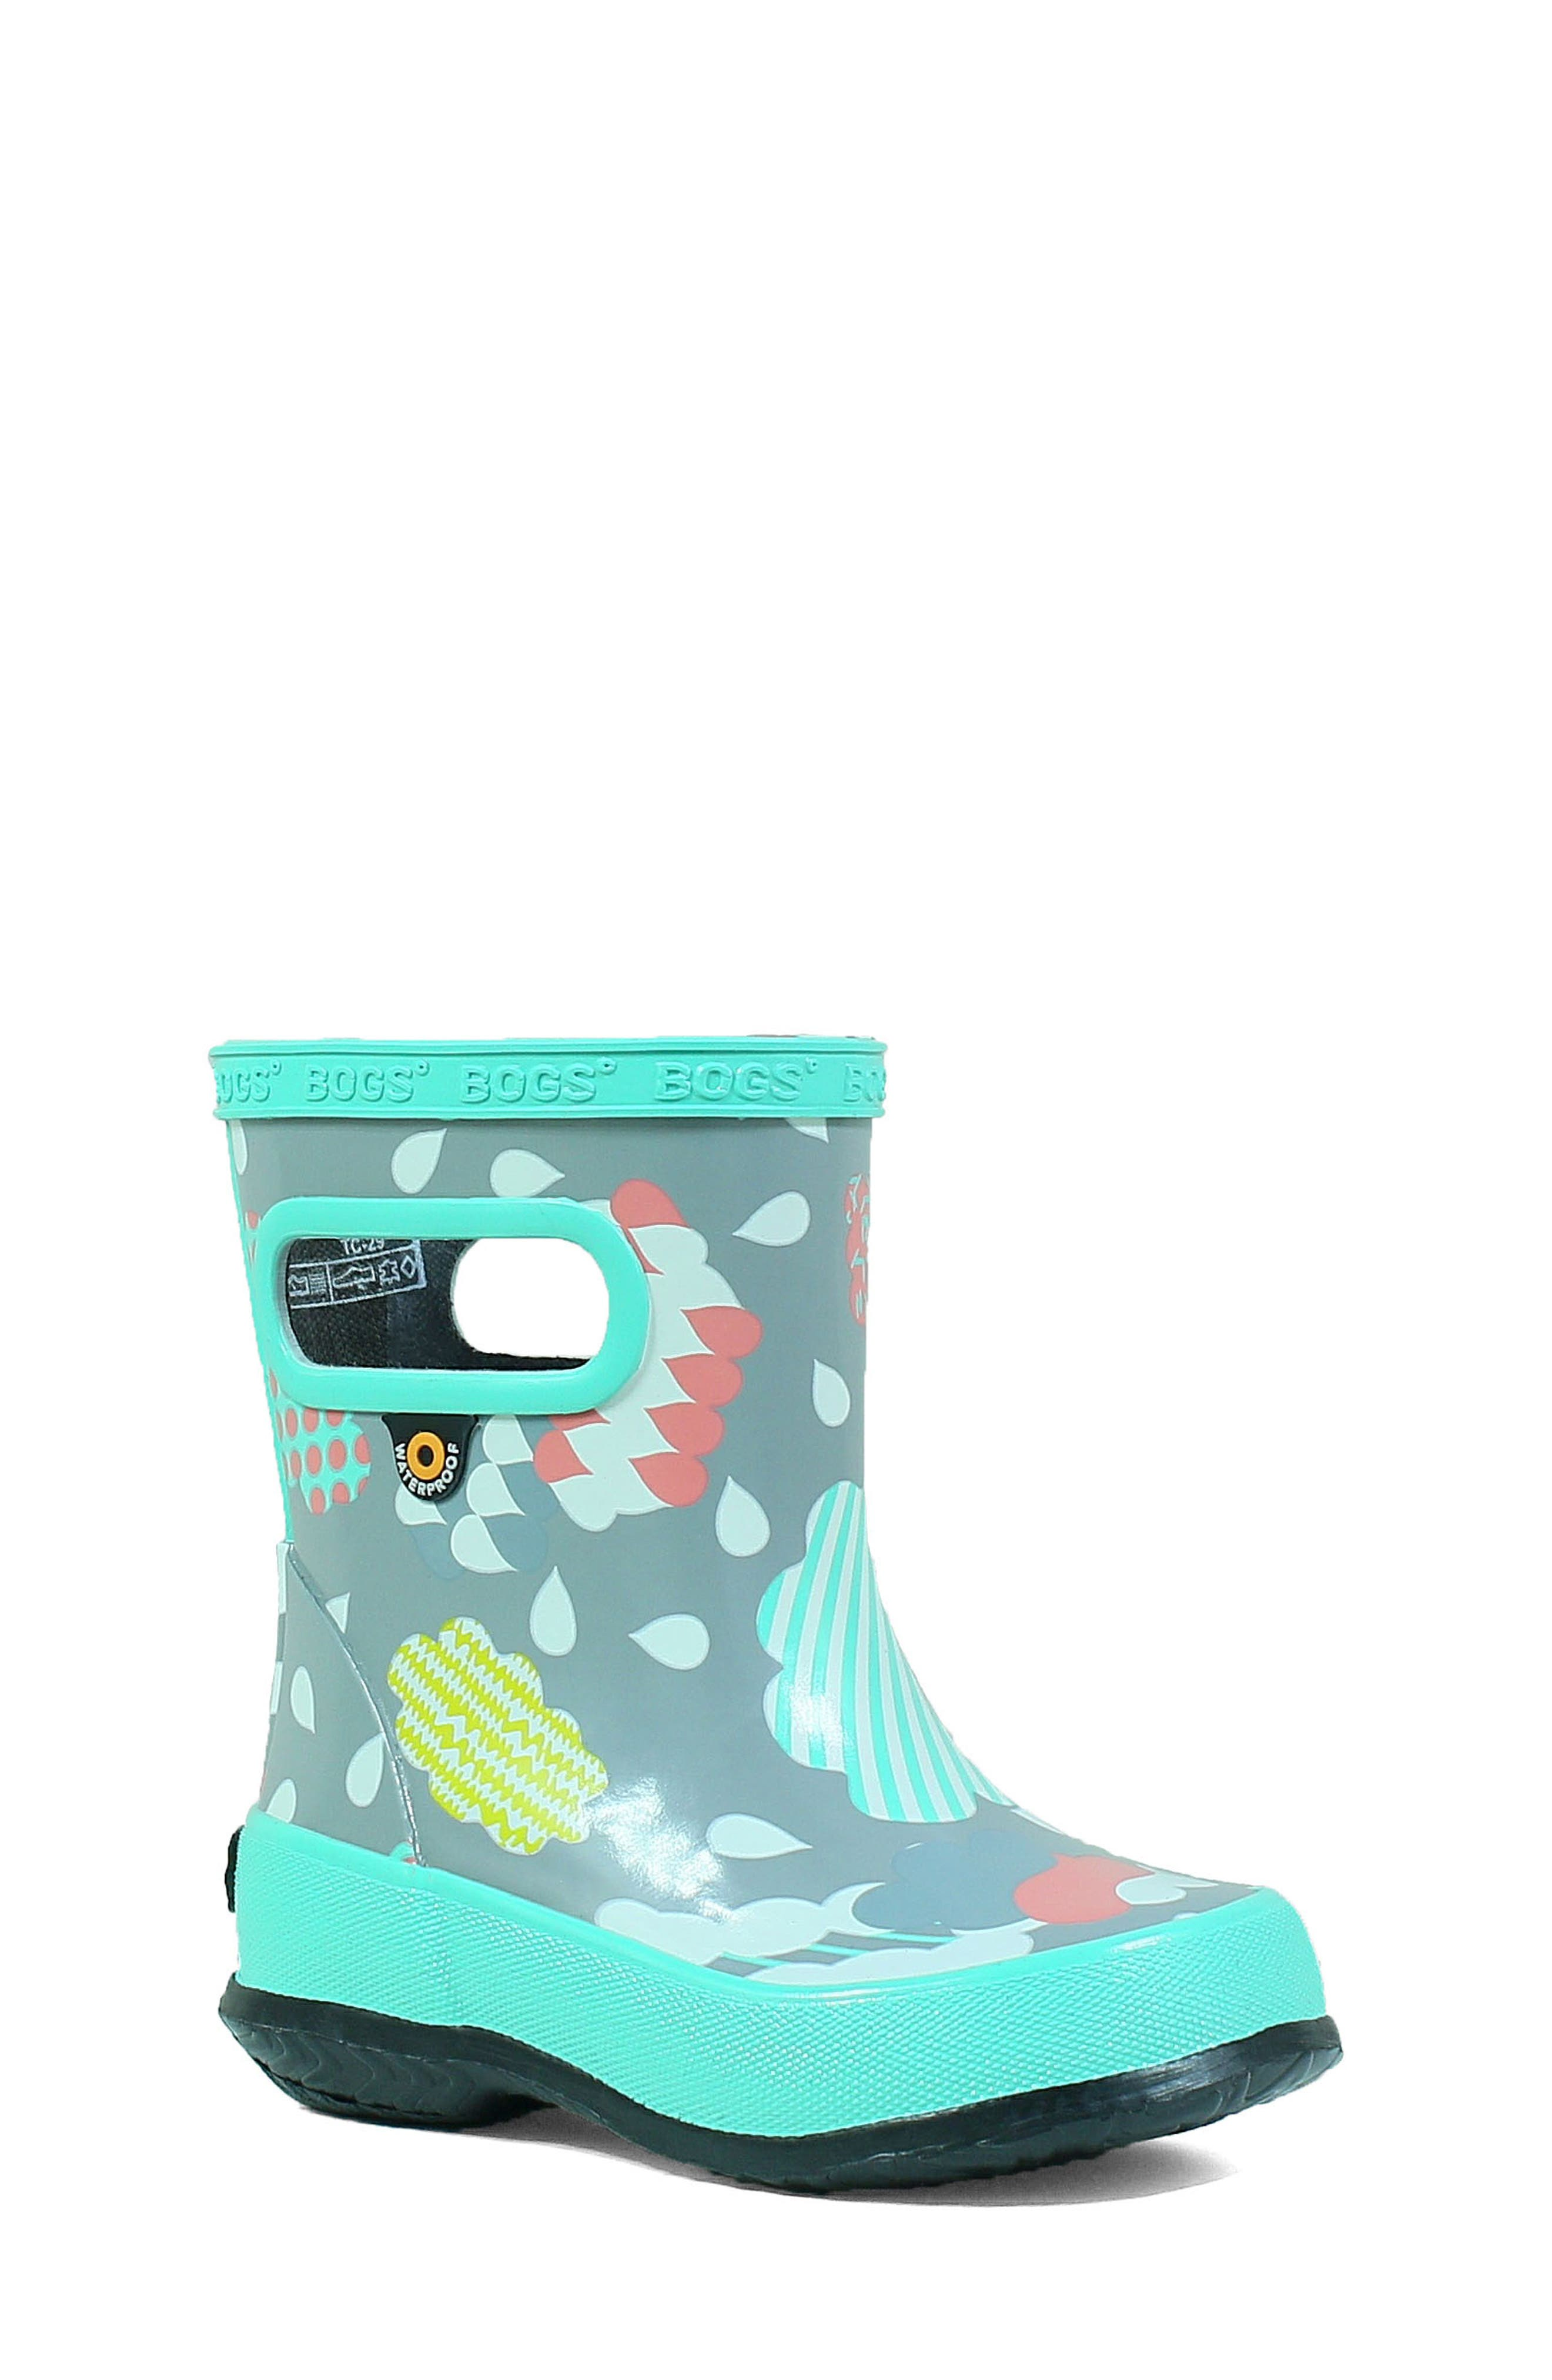 Bogs Clouds Skipper Waterproof Rain Boot